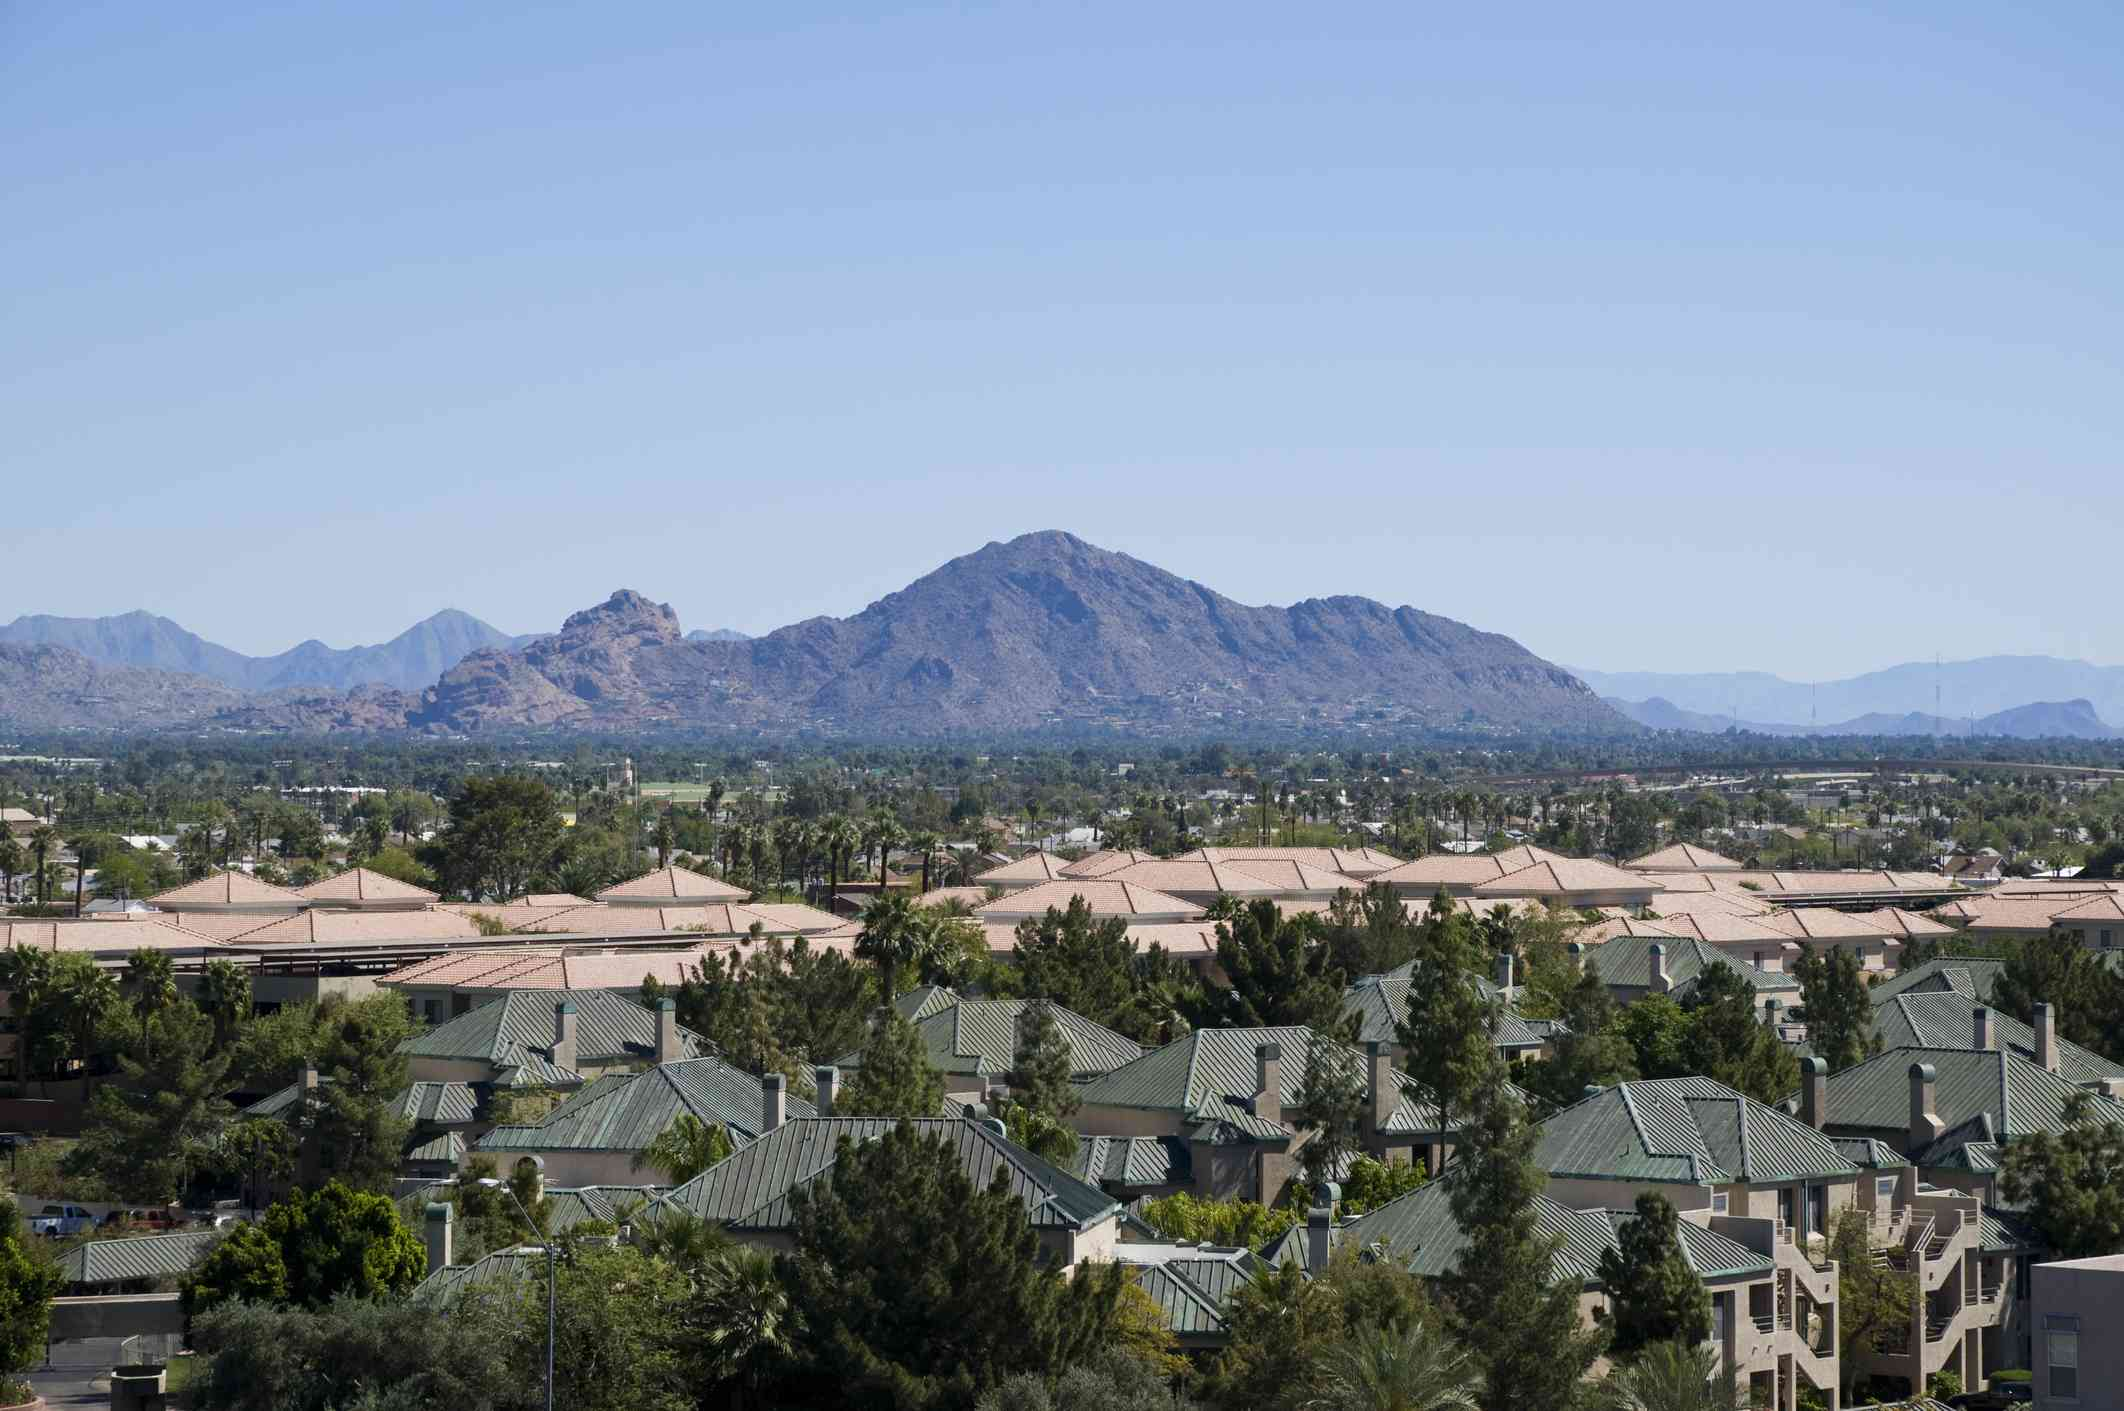 Aerial view of Camelback Mountain with a clear blue sky above and the city of Phoenix, Arizona in the foreground